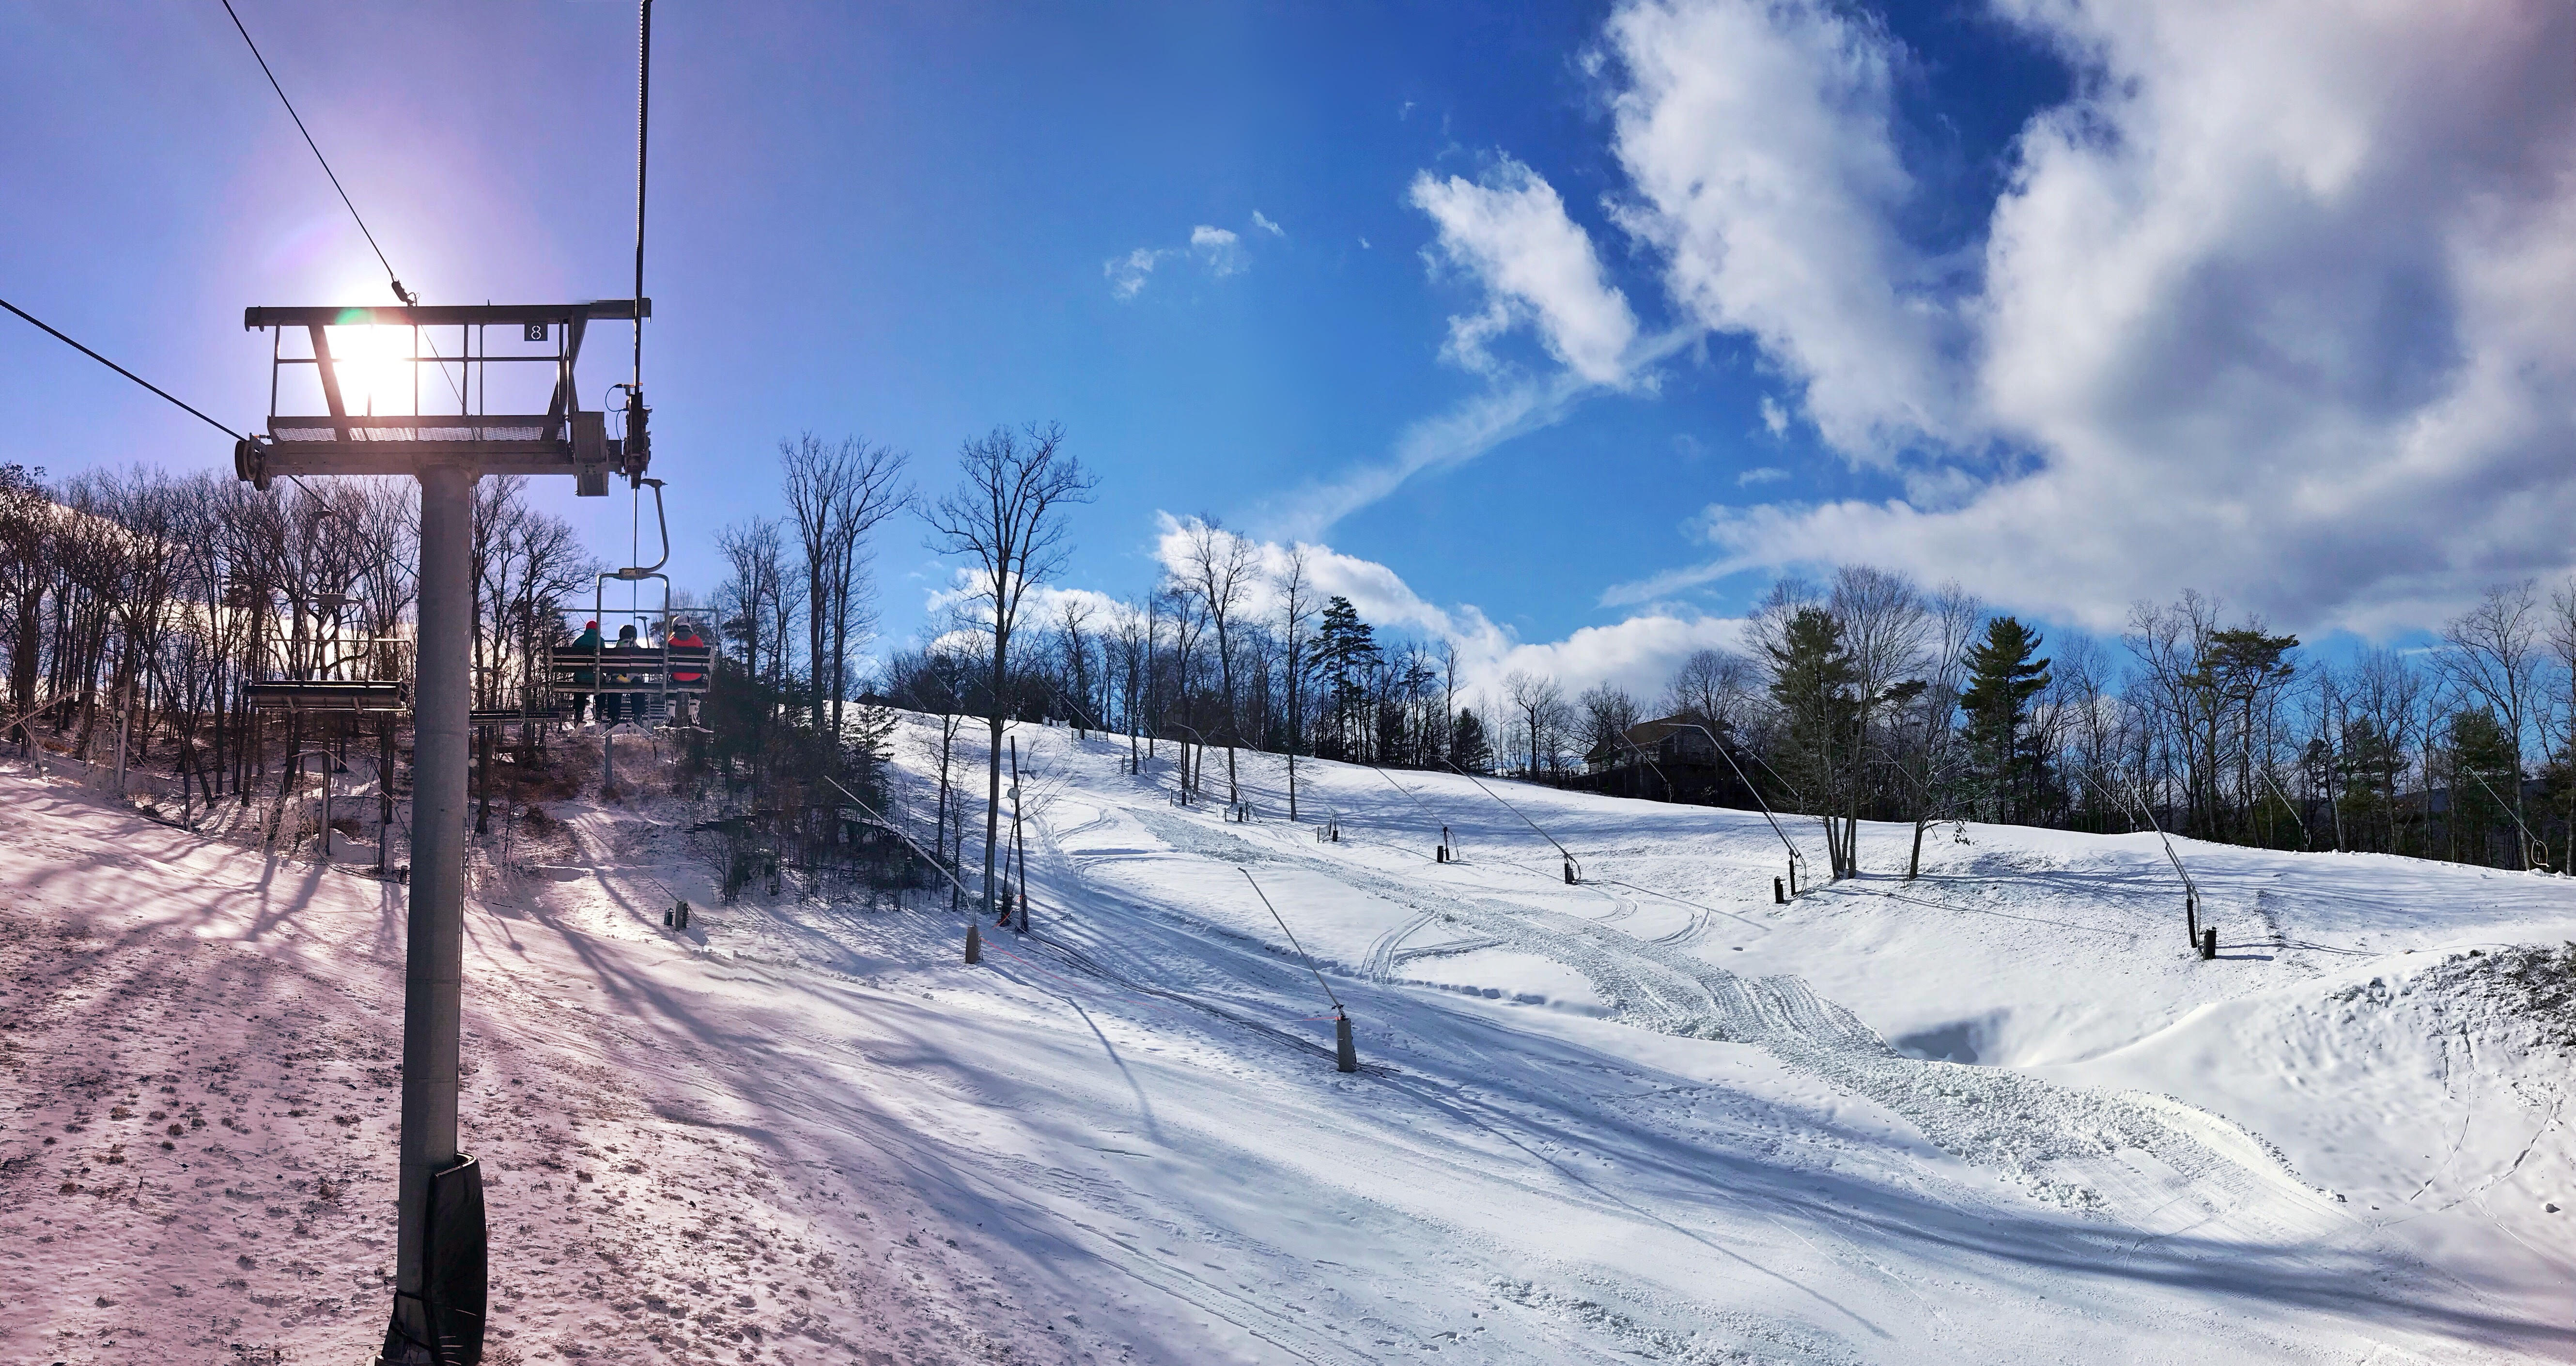 If you're looking for the perfect place to grab some grub and drinks in between your skiing adventures in Basye, VA, the Copper Kettle Bar &amp; Lounge is the place to be. With live music, picturesque views and a winning ambiance, you'll make the most of your ski adventure. (Image: Courtesy Bryce Resort)<p></p>